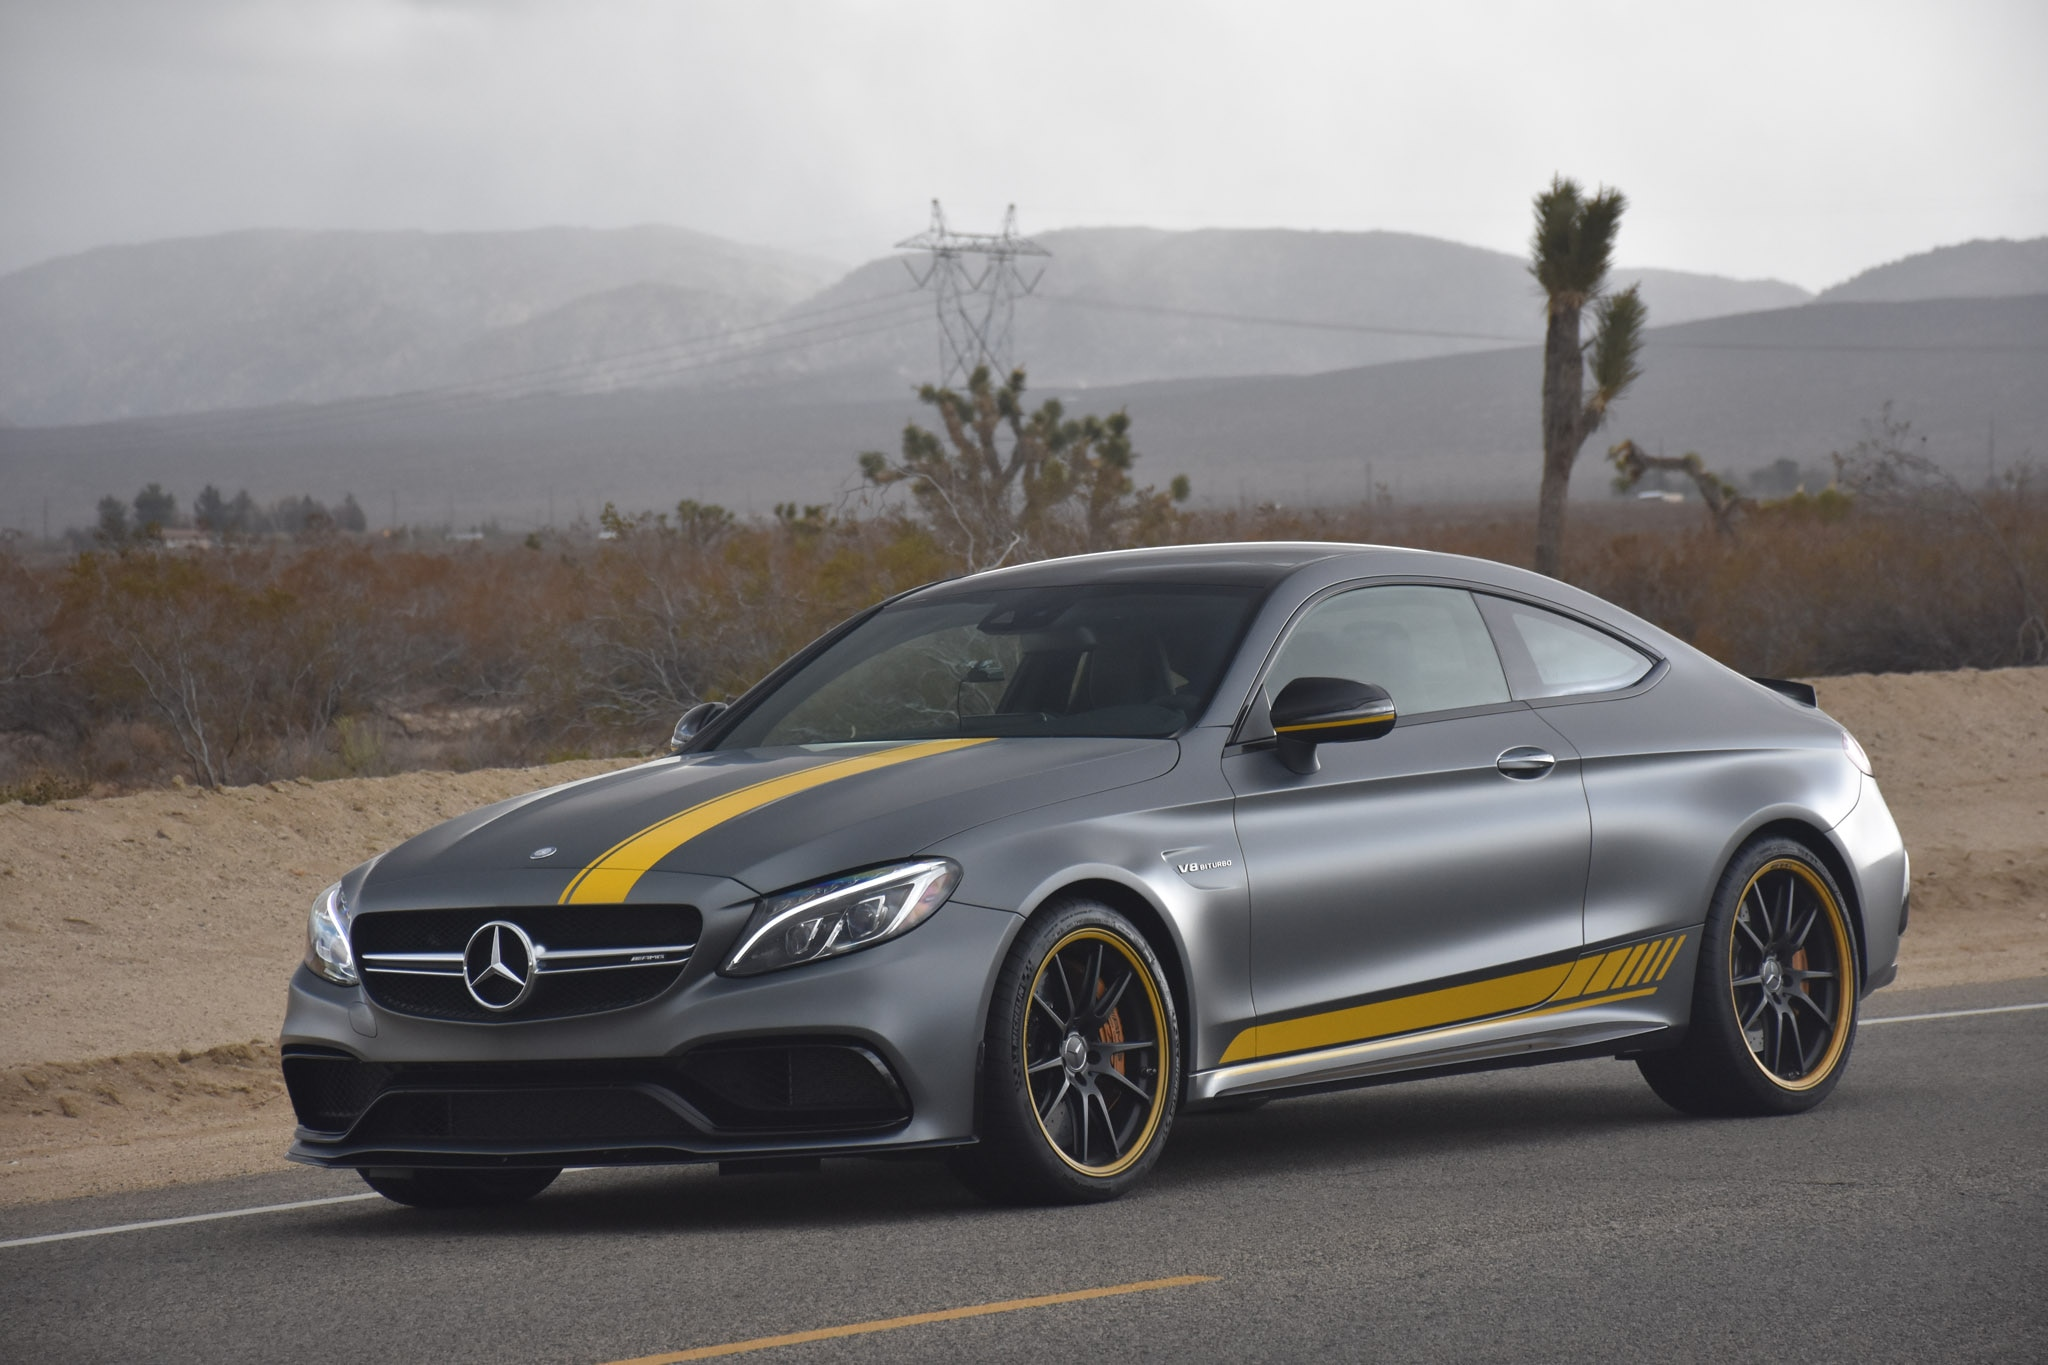 2017 mercedes benz c63 amg s coupe is a force of nature for Mercedes benz c63 amg sedan